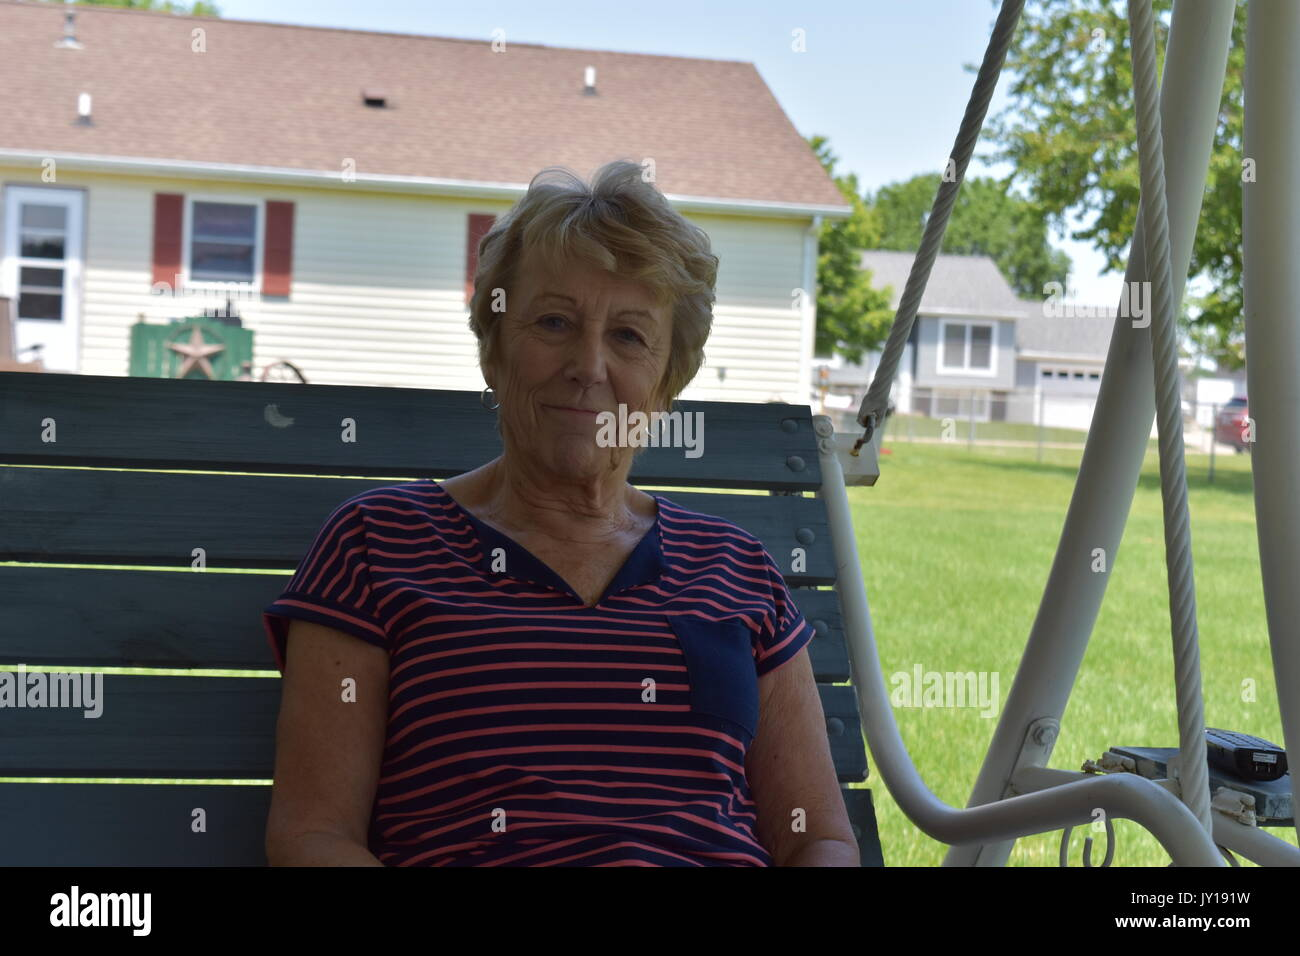 Elderly woman sitting on a swing in her backyard smiling. She doesnt seem to have a care in the world on this beautiful sunny day! - Stock Image